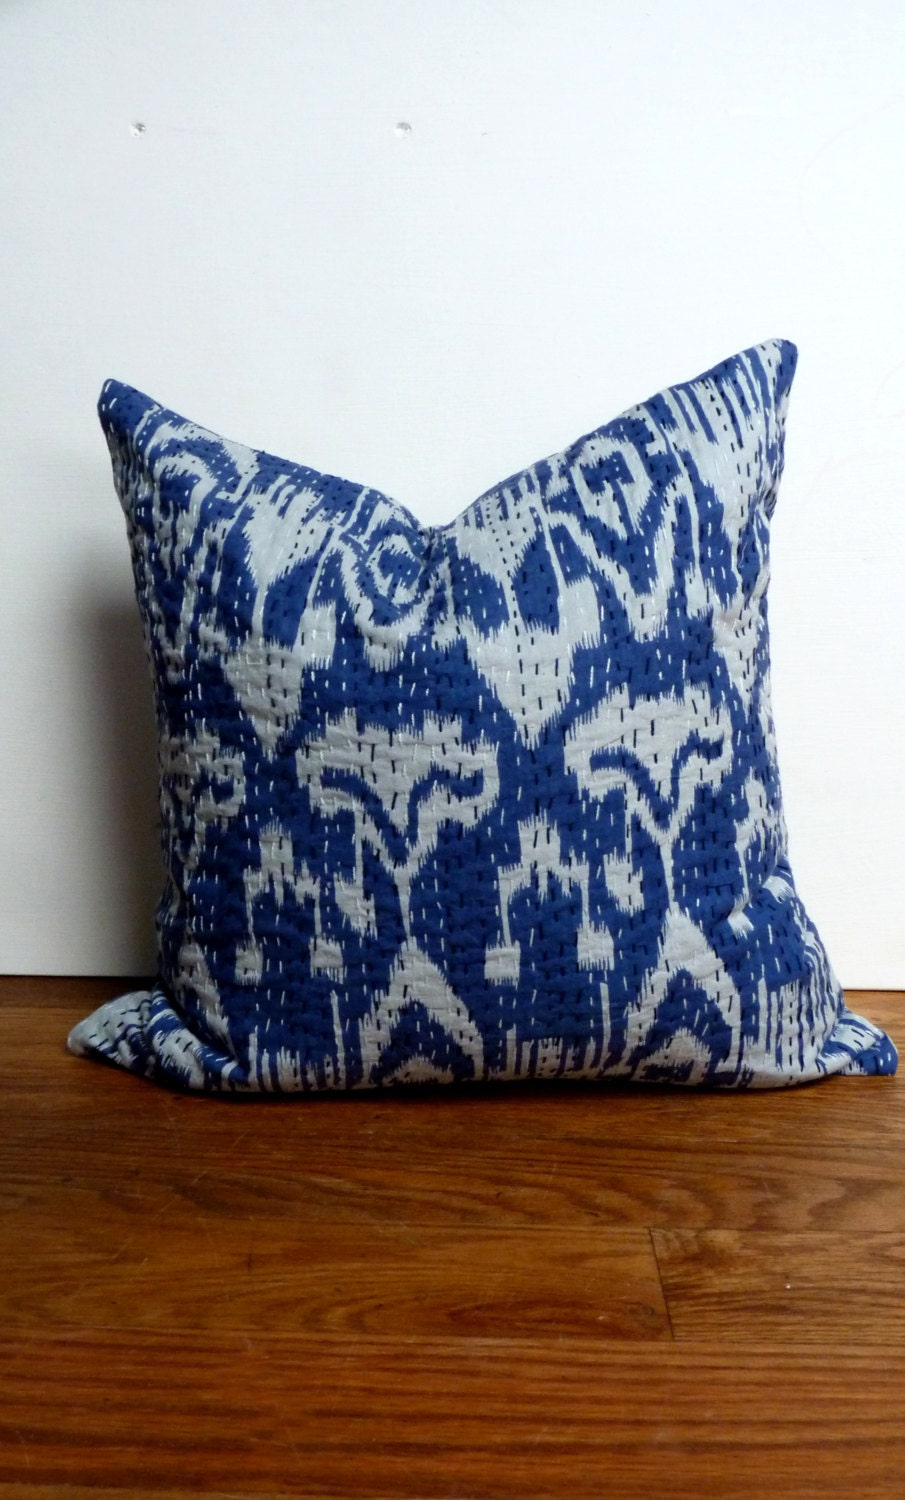 Indigo Blue Throw Pillow : Unavailable Listing on Etsy